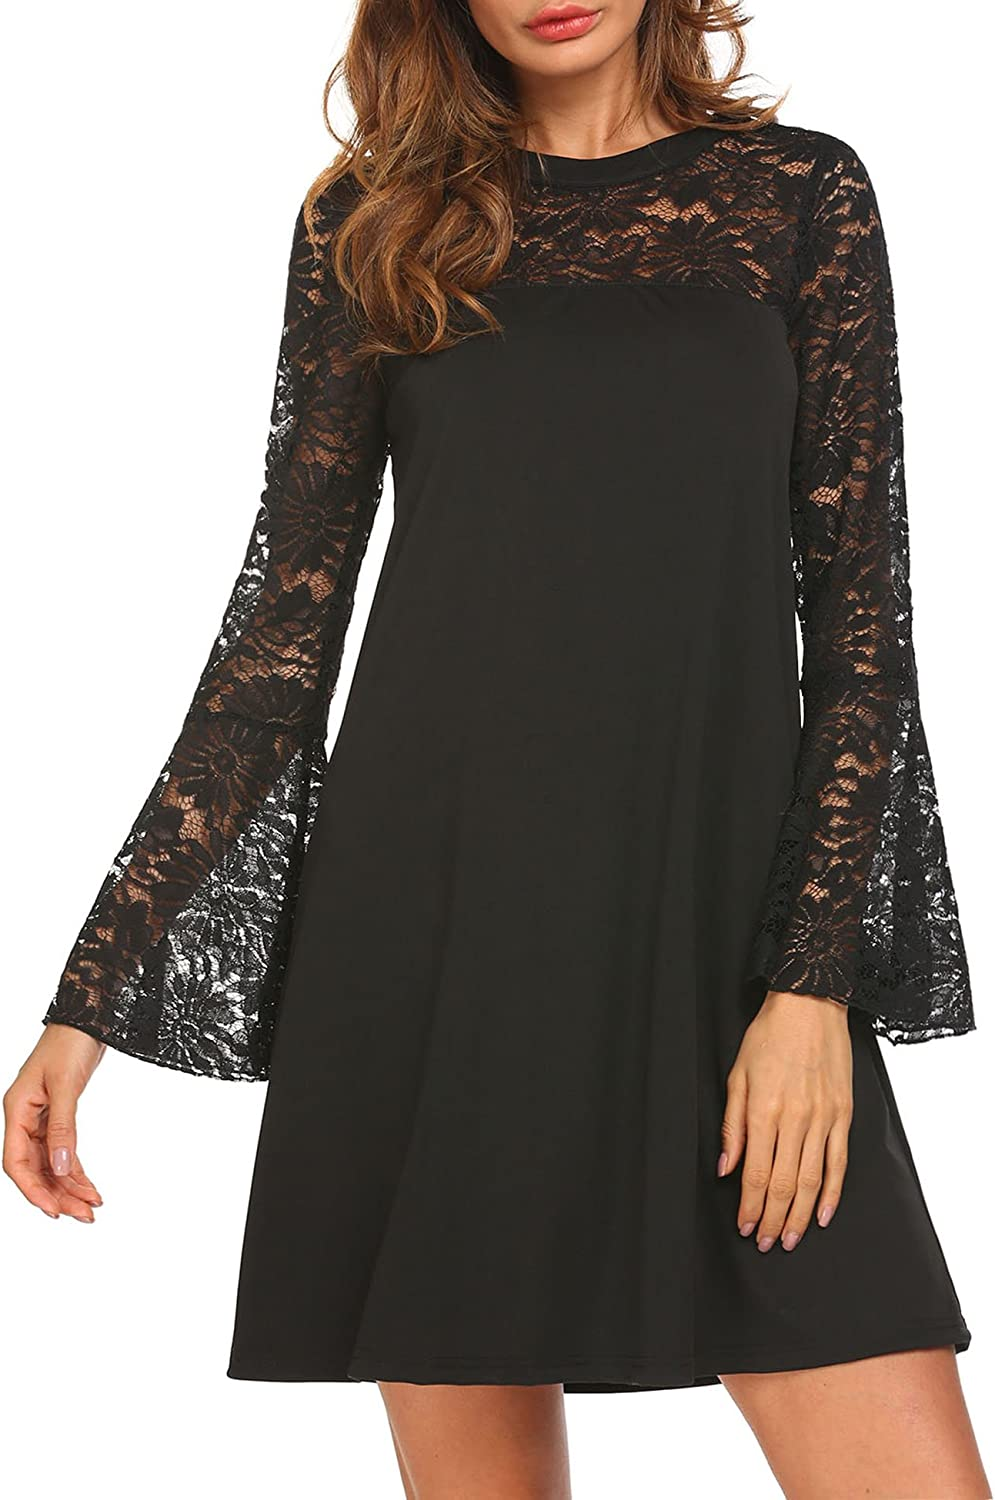 Pasttry Women's Lace Patchwork Tunic Dress Long Sleeve Cocktail Party A Line Dress